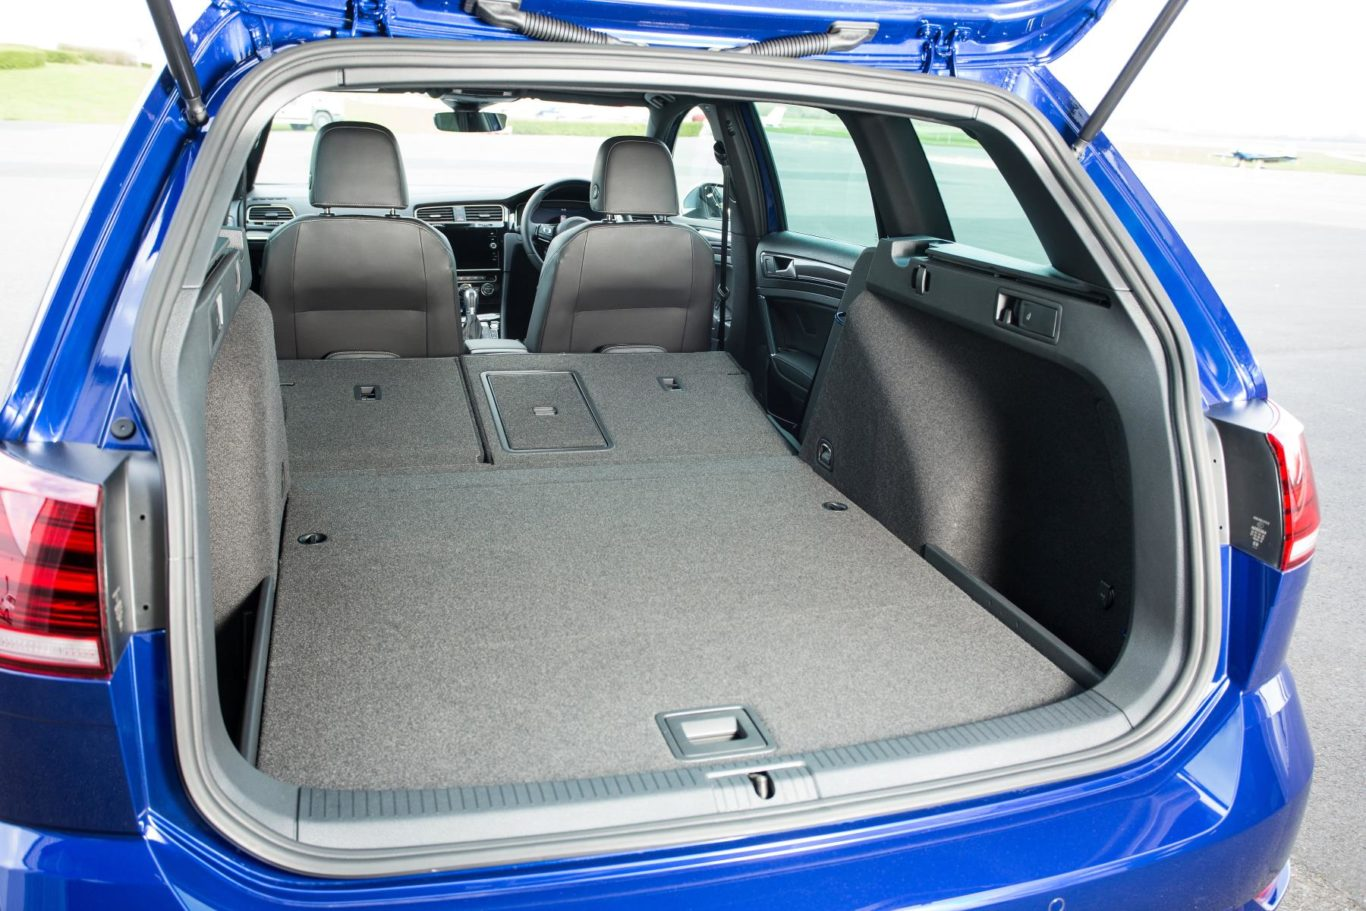 The Golf R Estate's boot is usefully large